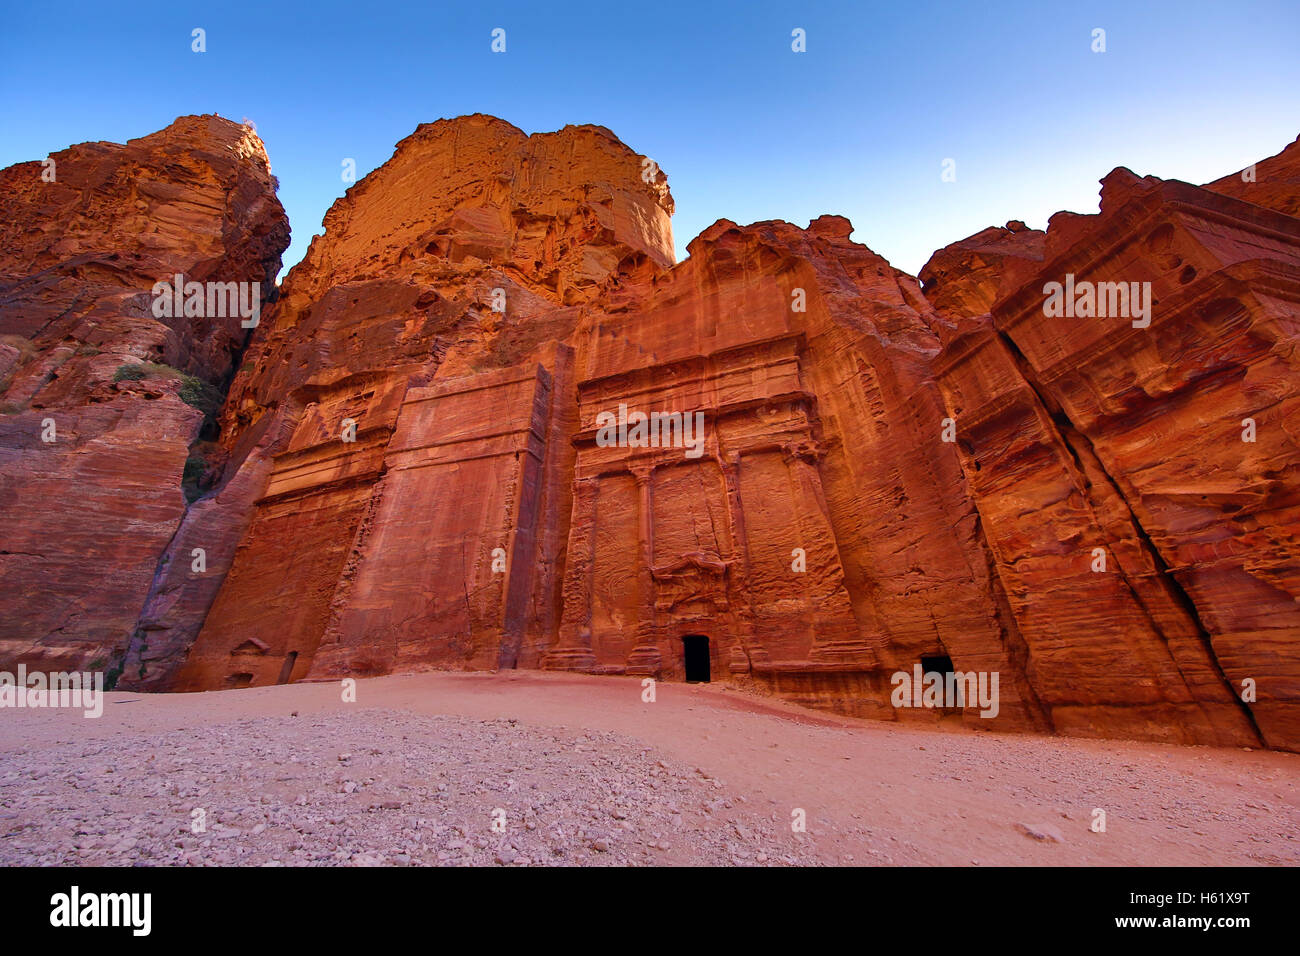 The Street of Facades in the rock city of Petra, Jordan - Stock Image